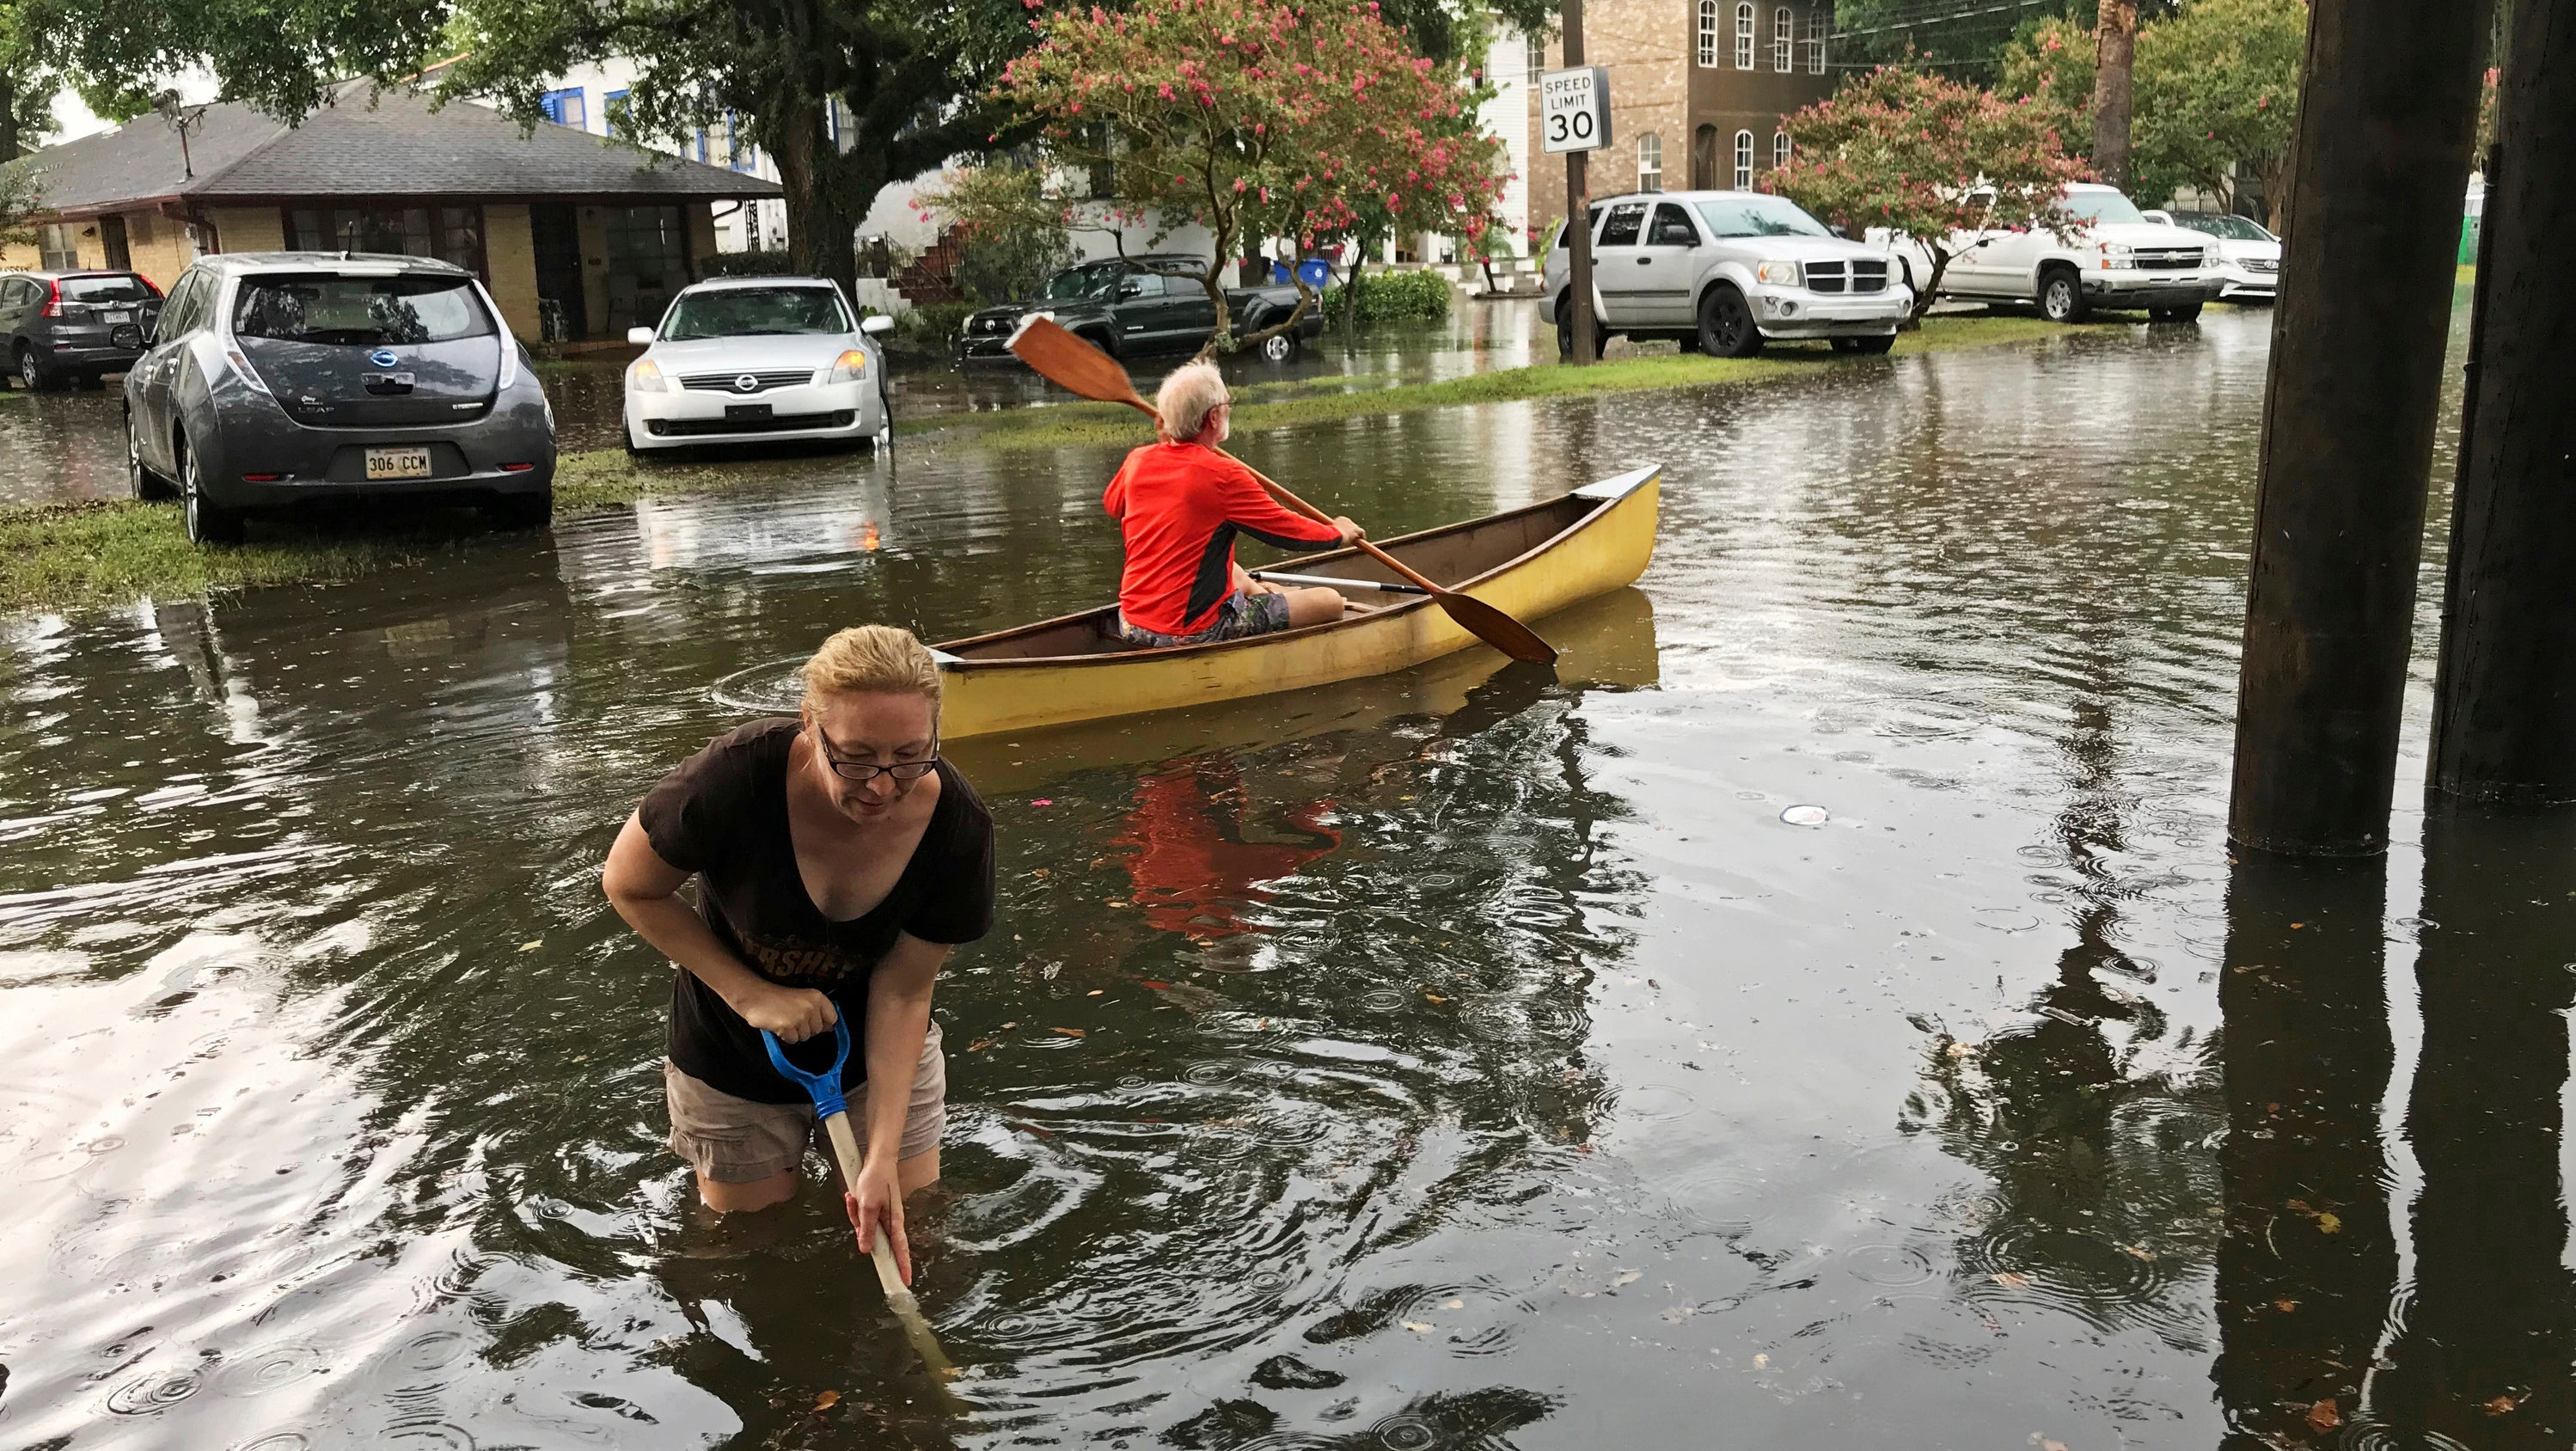 Barry Tests New Orleans Levees as Mississippi River Sees Dangerous New Normal   The Weather Channel - Articles from The Weather Channel   weather.com